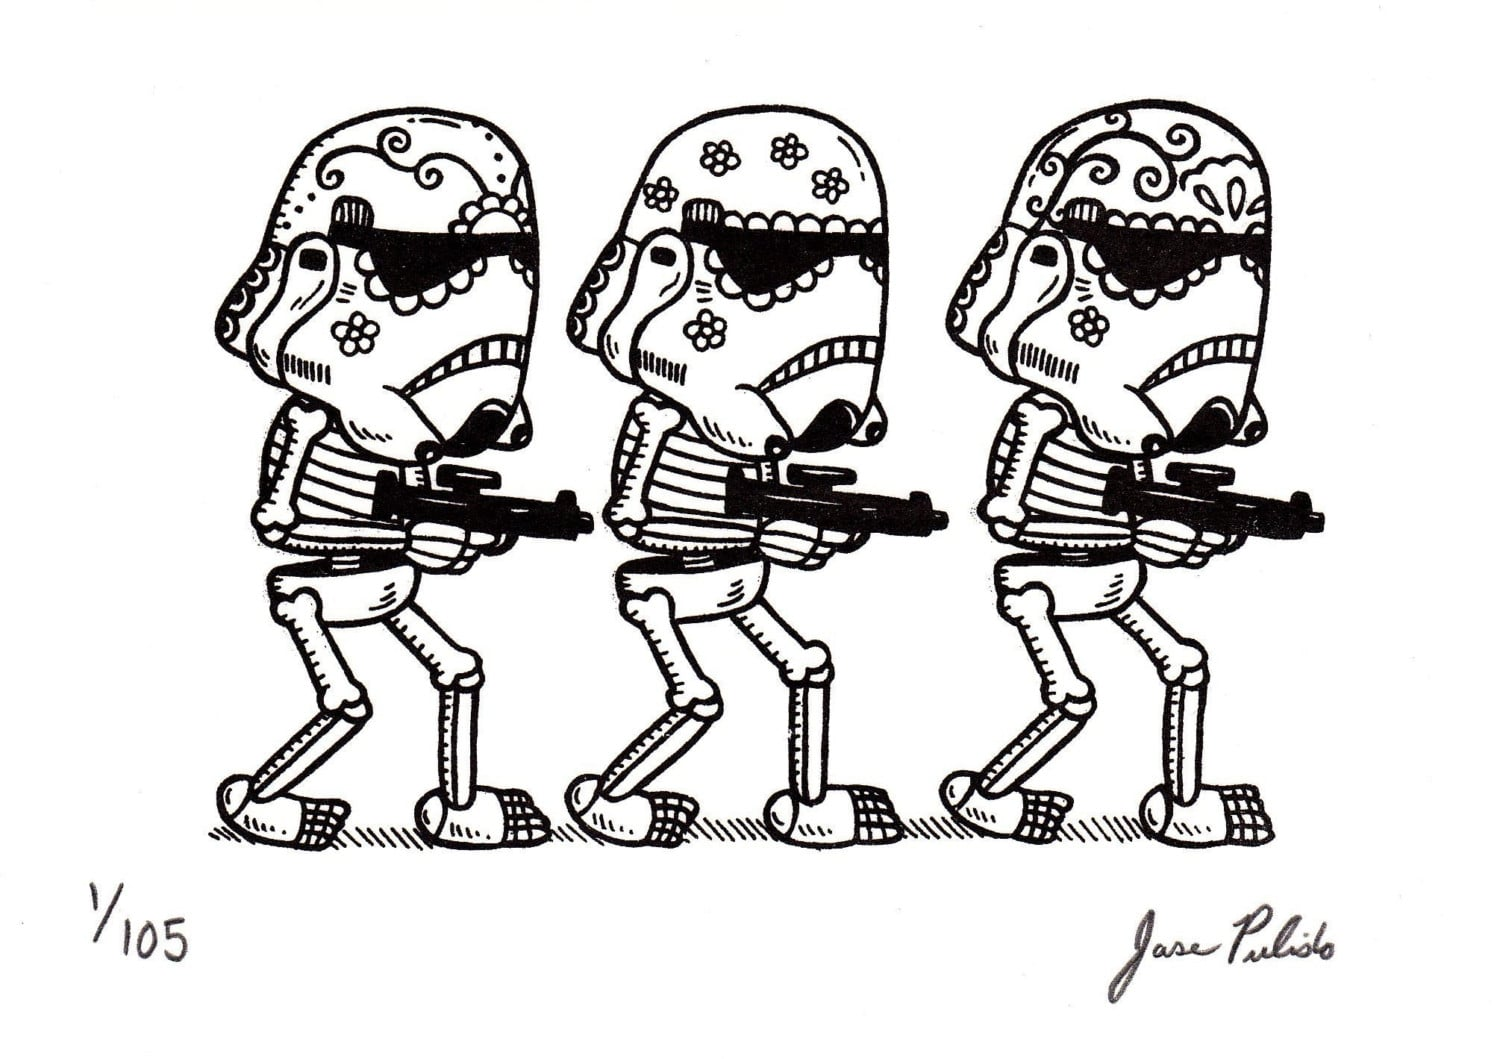 Star Wars In The Form Of Mexican Traditional Art   Bit Rebels